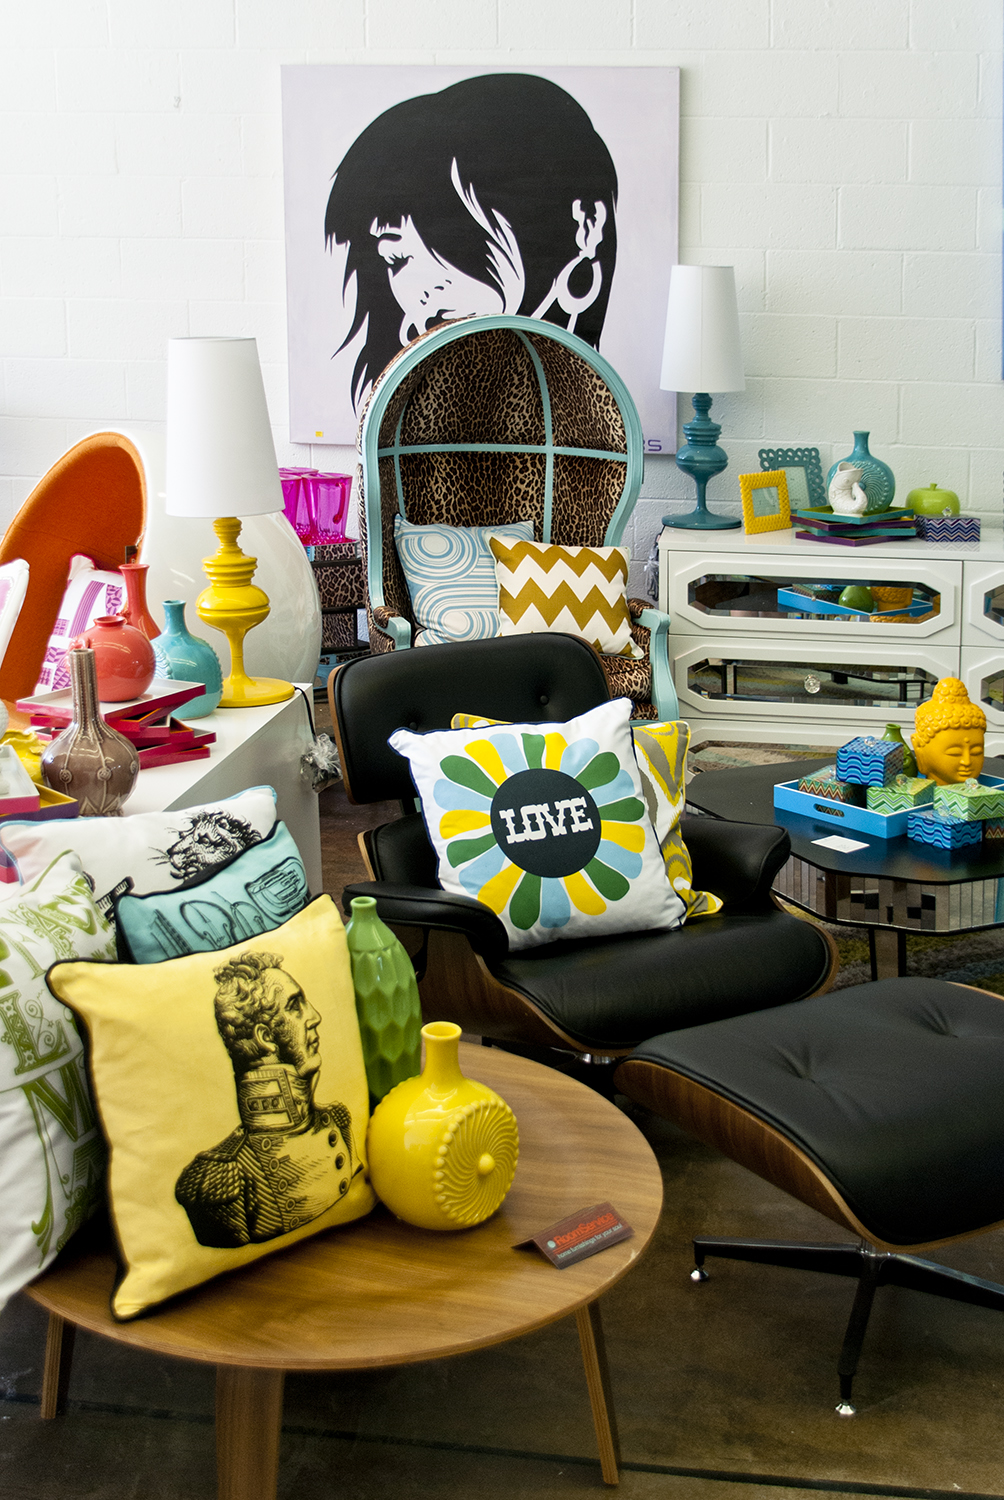 High Quality As You Can See, Our Modern Designs Are Full Of Color And Fun Fabrics! If  You Are Visiting Palm Springs For A Mini Getaway Or Relocating To This  Amazing Gem, ...